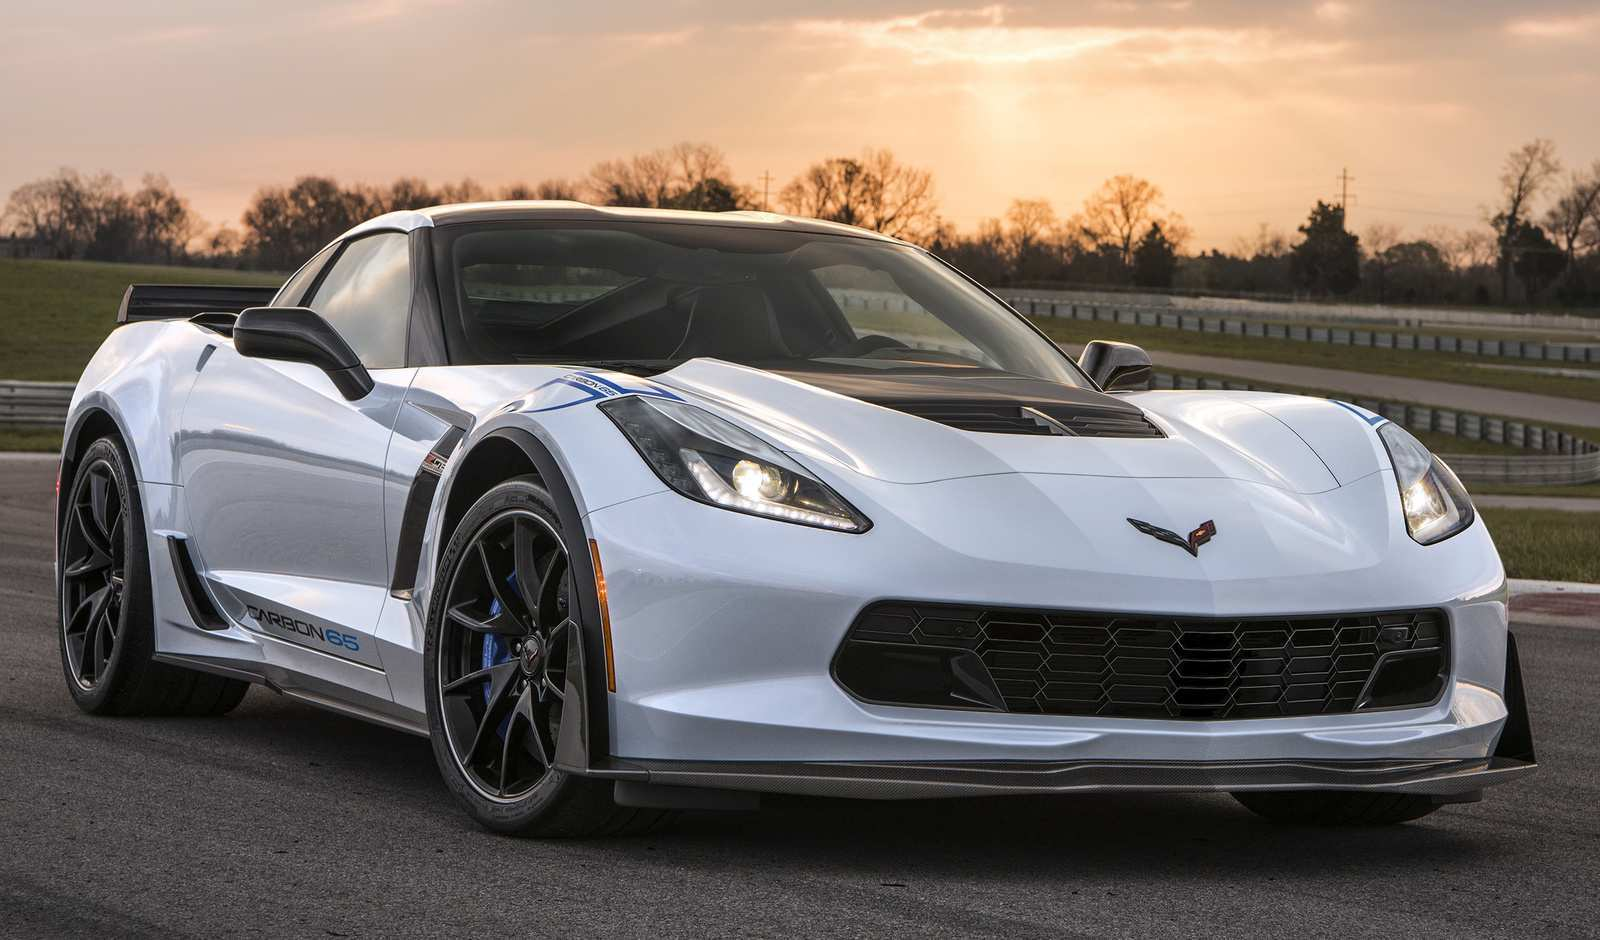 31 Gallery of New 2019 Chevrolet Corvette Grand Sport Review Rumor Exterior and Interior for New 2019 Chevrolet Corvette Grand Sport Review Rumor